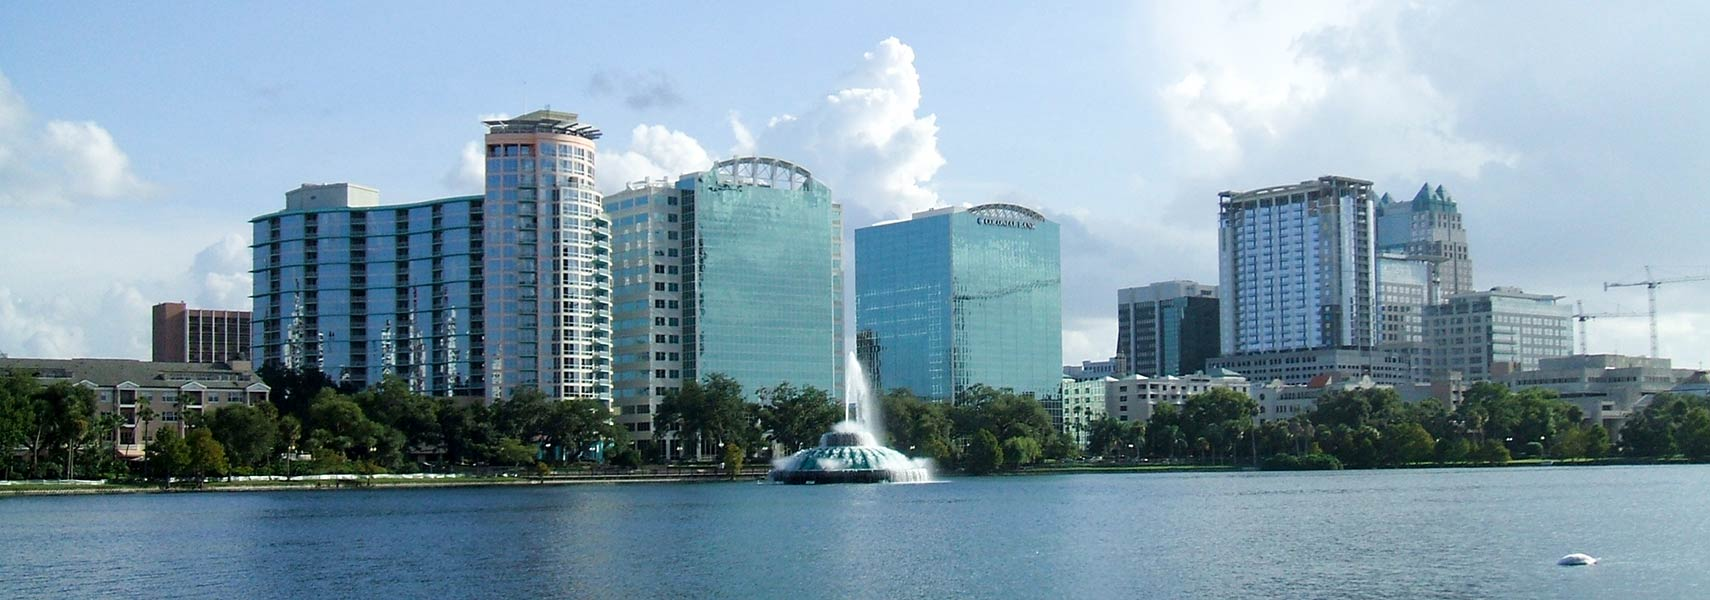 Google Map of Orlando, Florida, USA - Nations Online Project